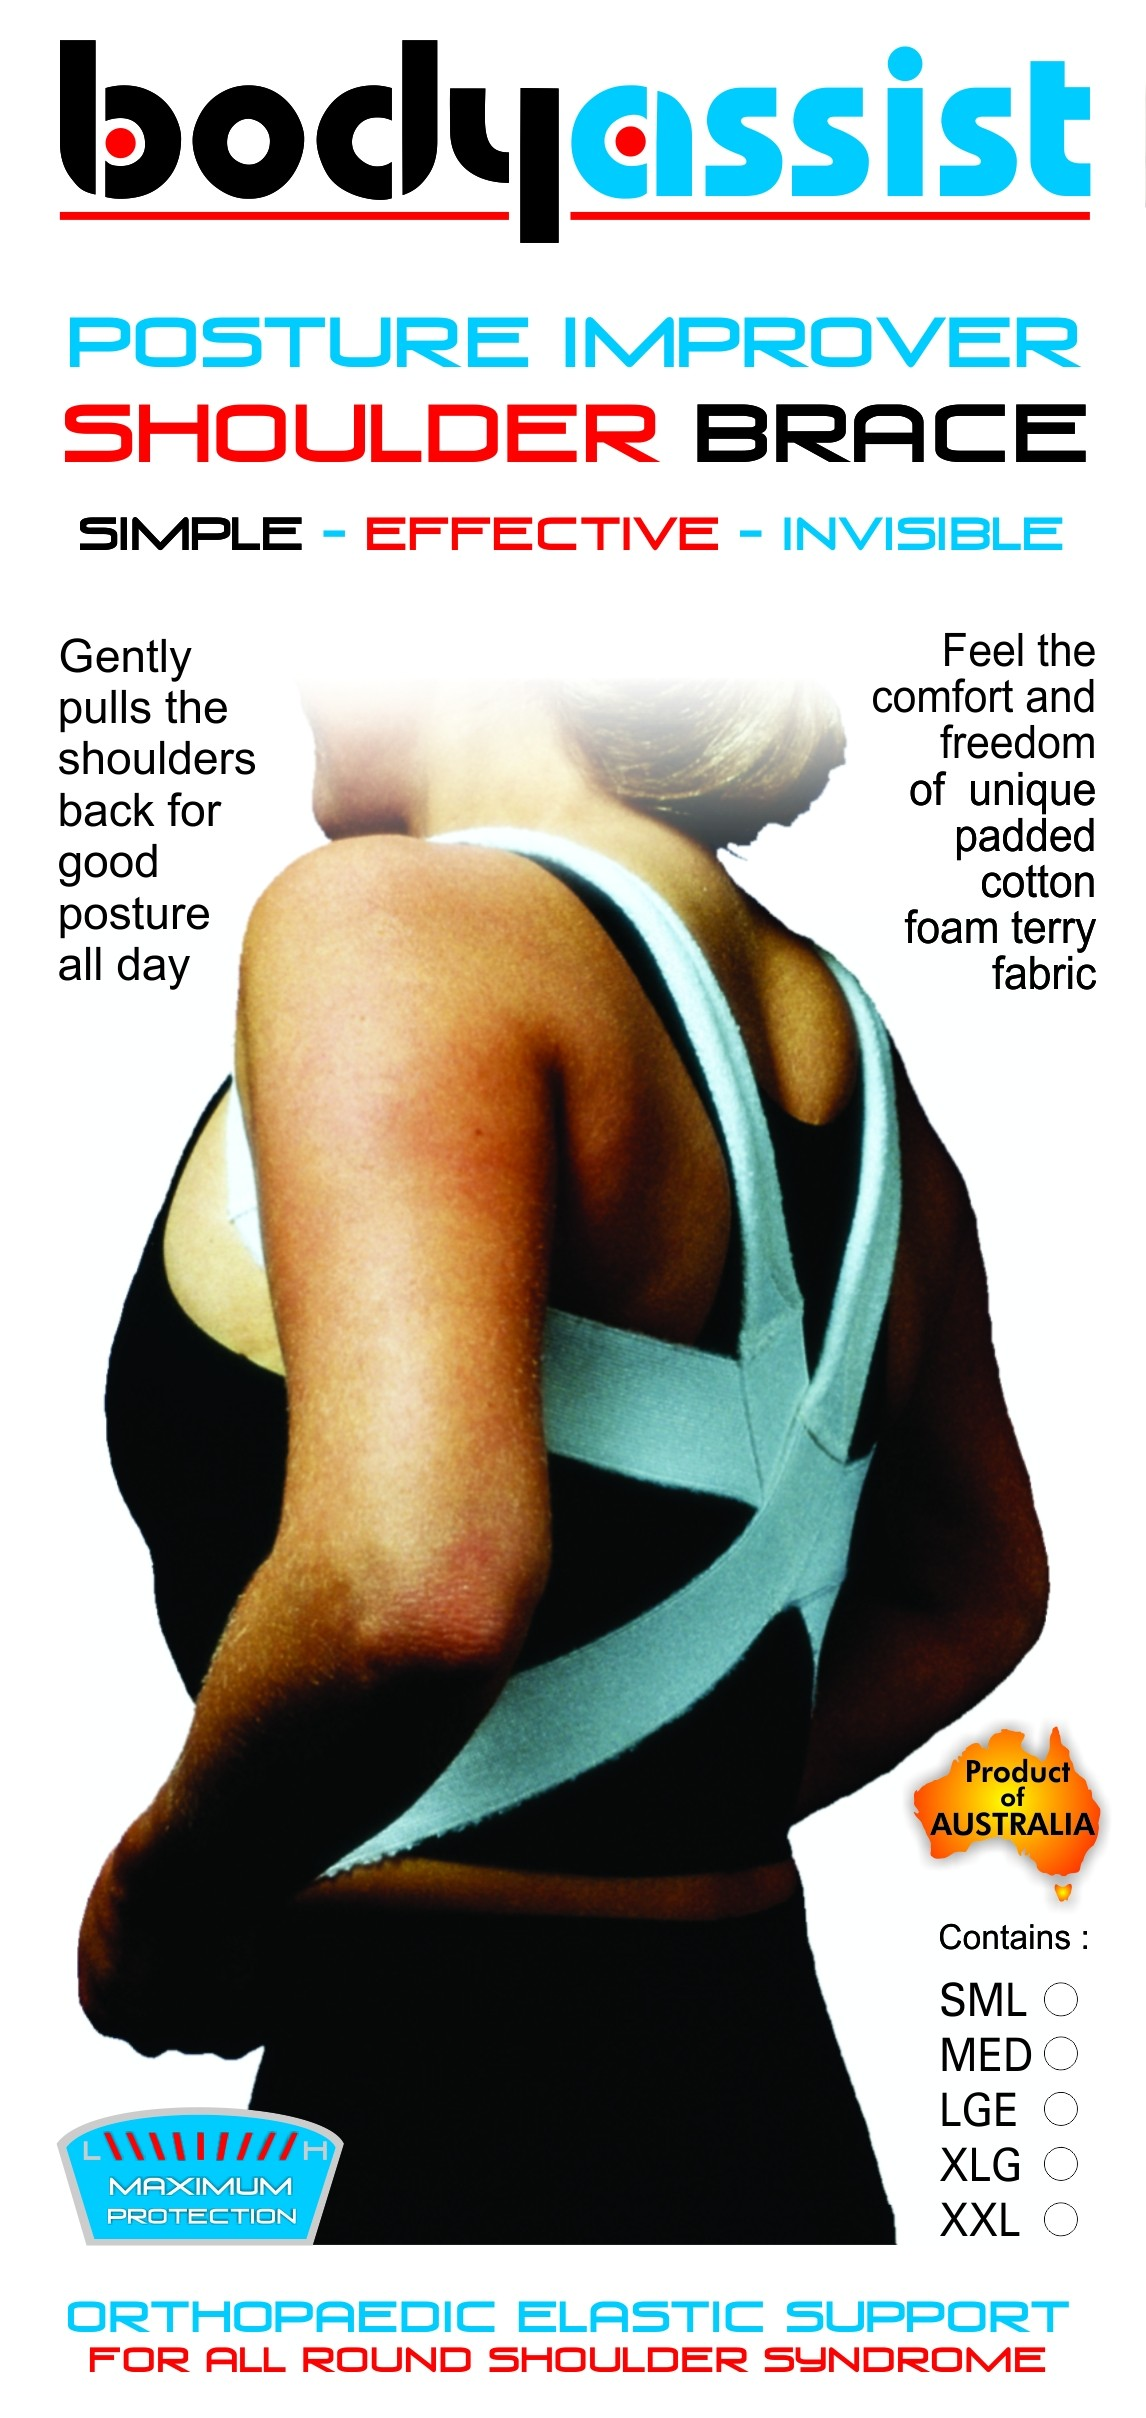 The Posture Improver